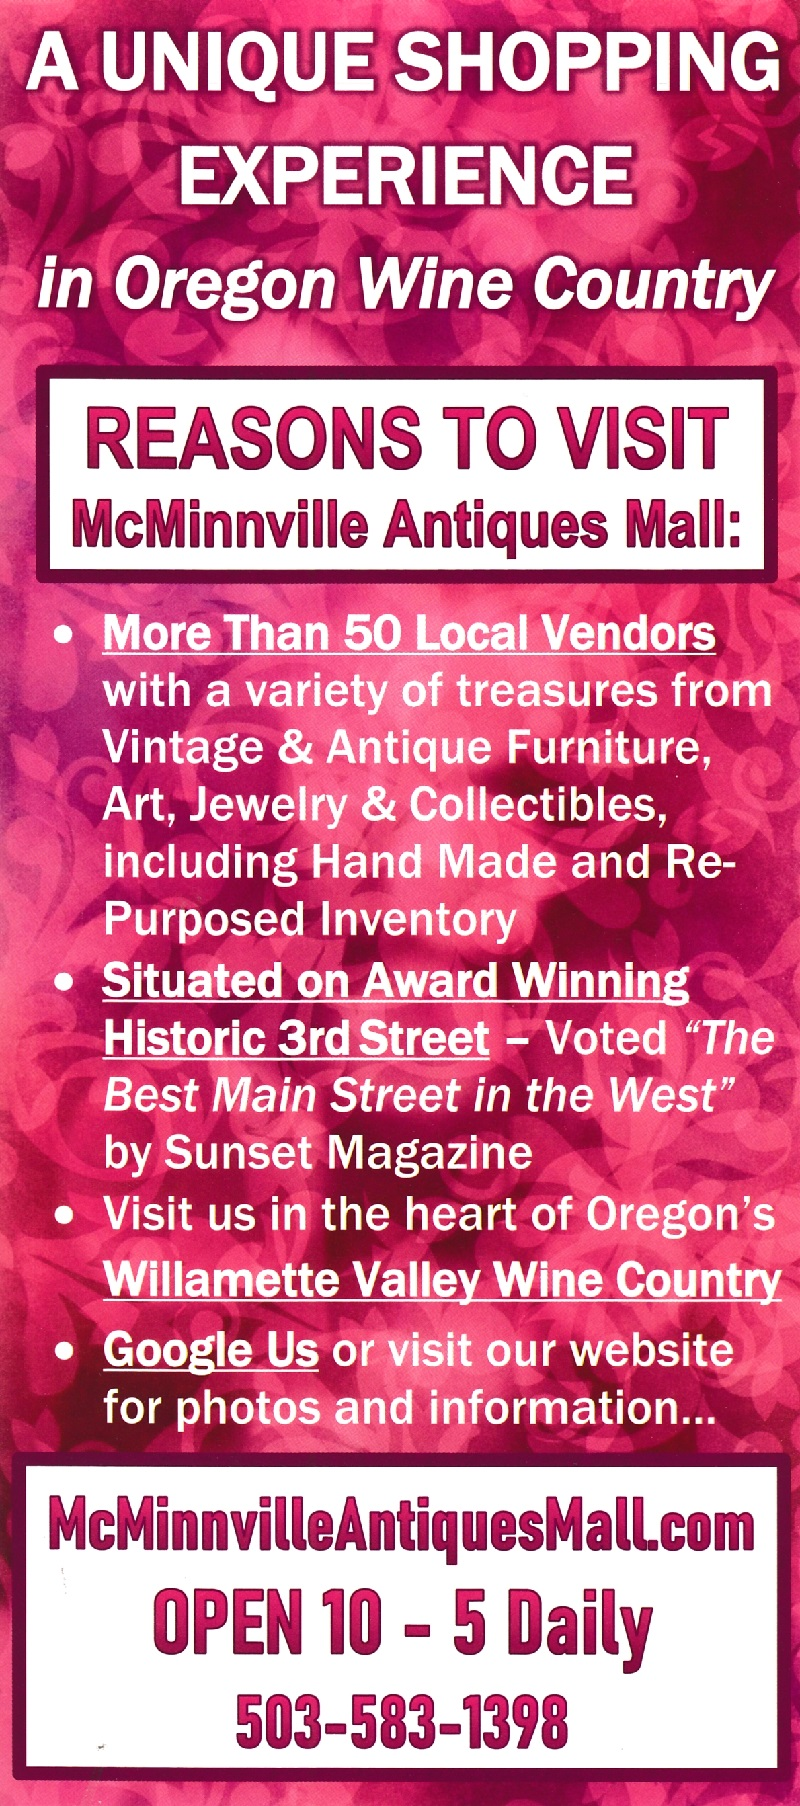 McMinnville Antiques Mall brochure thumbnail